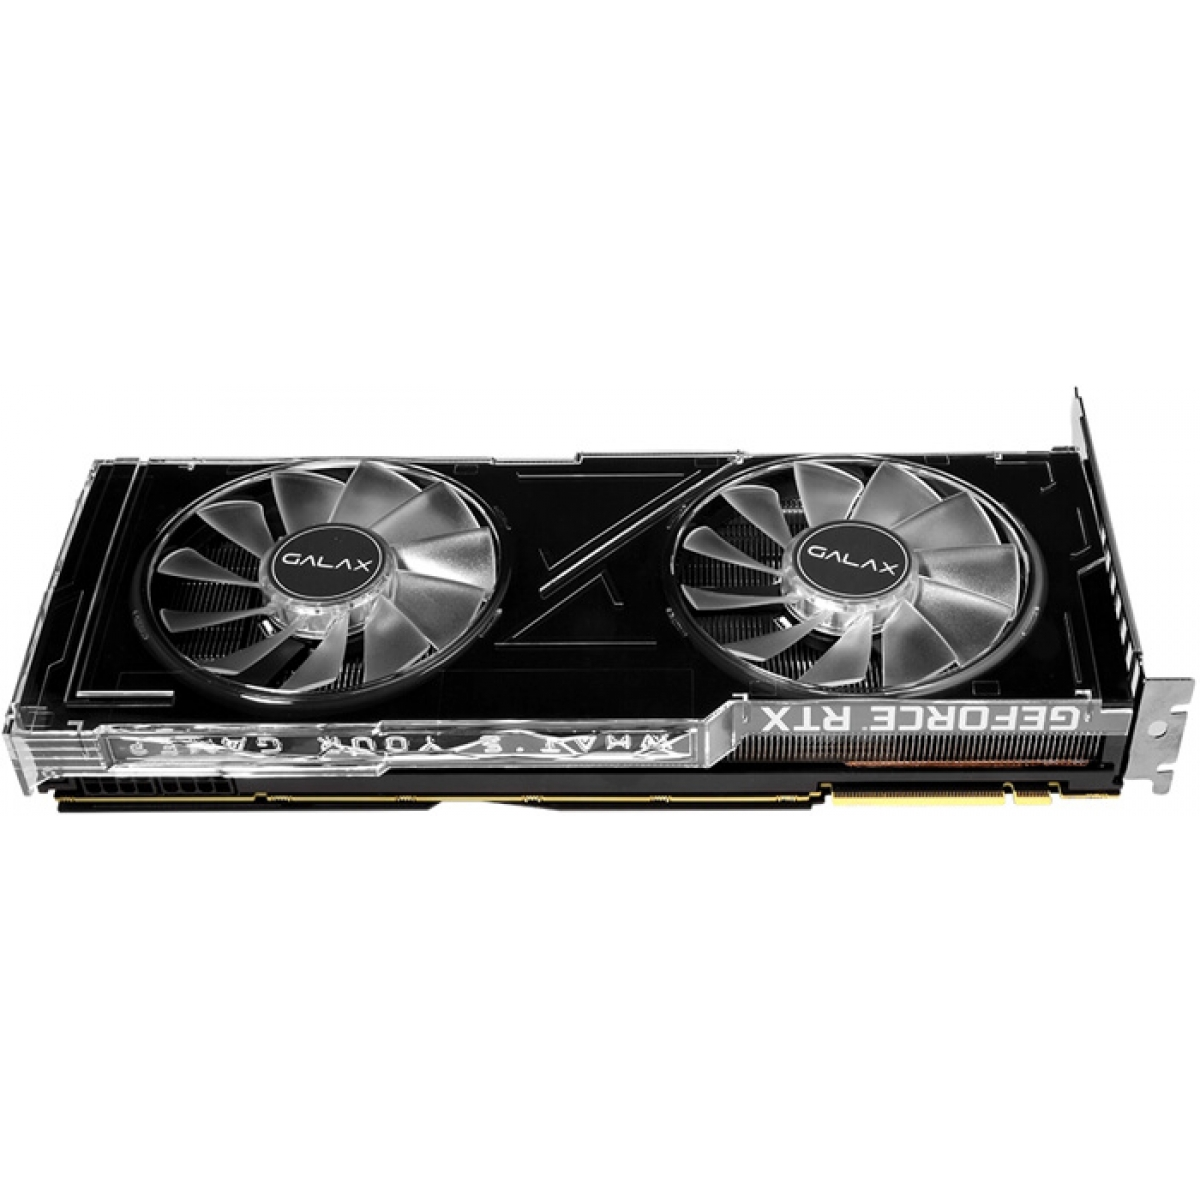 Placa de Vídeo Galax Geforce RTX 2080 Ti Dual Black, 11GB GDDR6, 28IULBUCT4ND